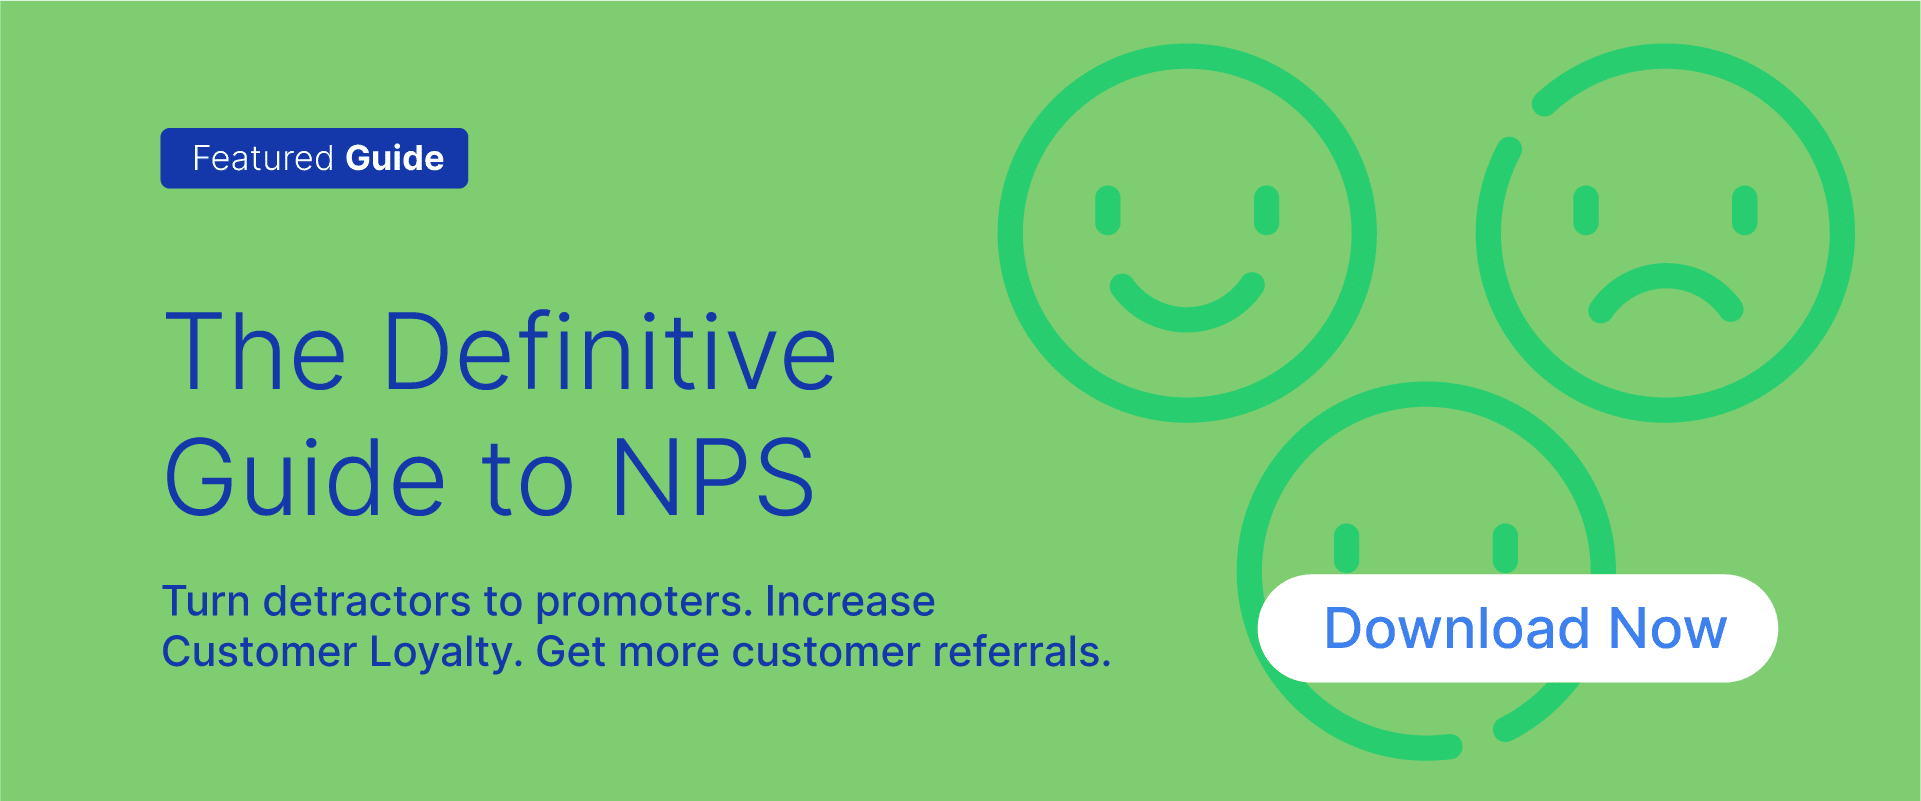 Free Resouce : Download NPS Guide to increase Net Promoter Score